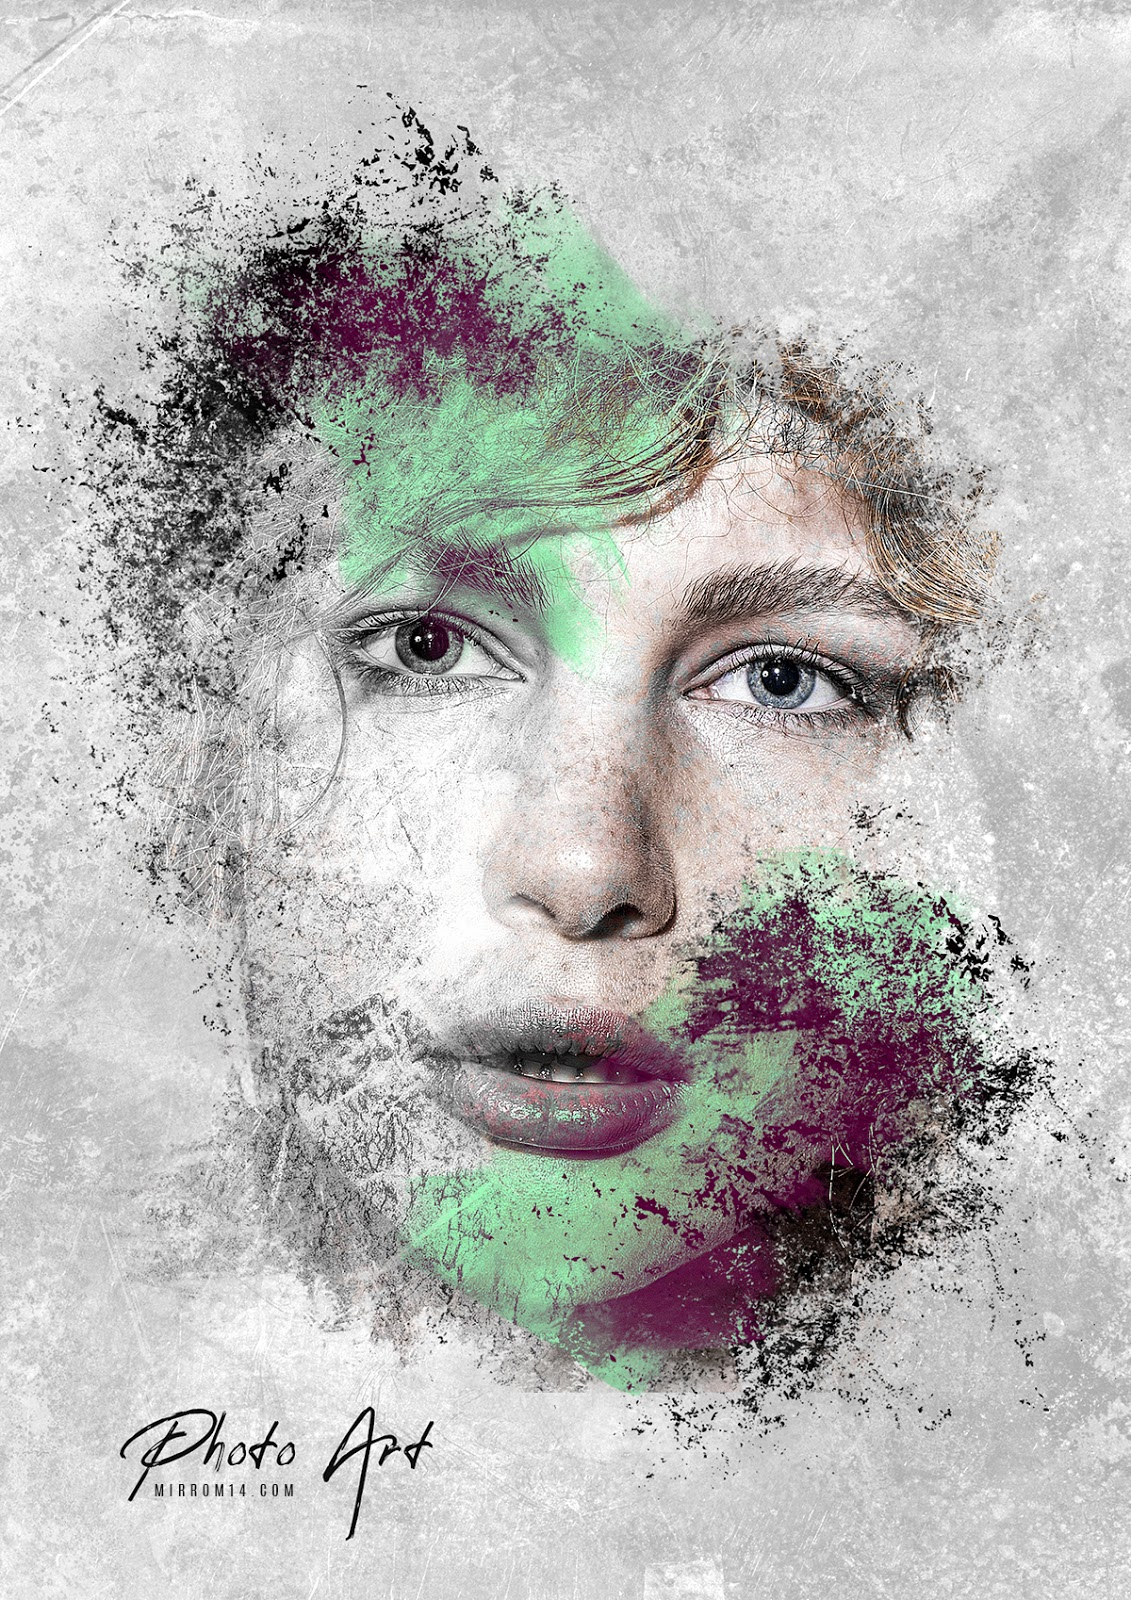 Creative Photo Art Paint Grunge Brush Photoshop Tutorial